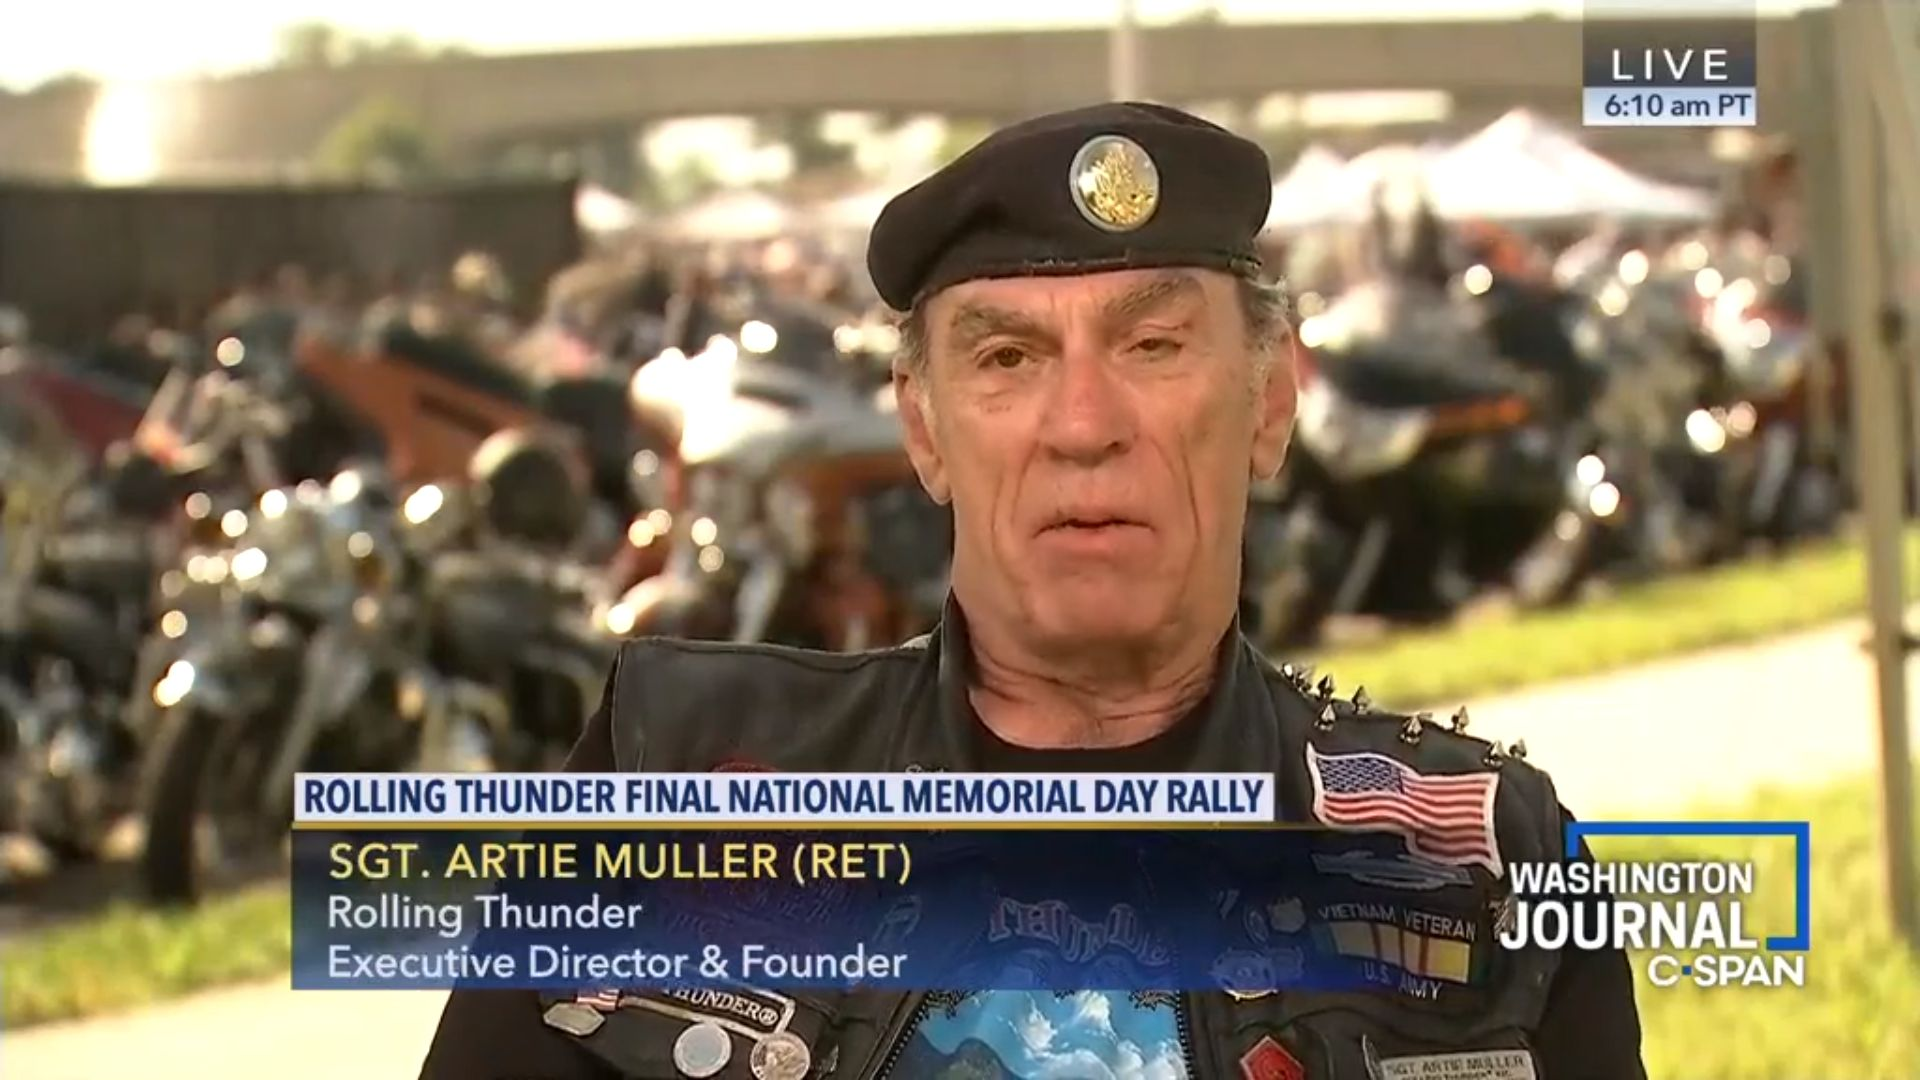 Sgt. Artie Muller, Rolling Thunder's founder and executive director, expressed surprise upon hearing President Trump's claim to have worked out a deal with his organization to continue the annual run through the nation's capital.